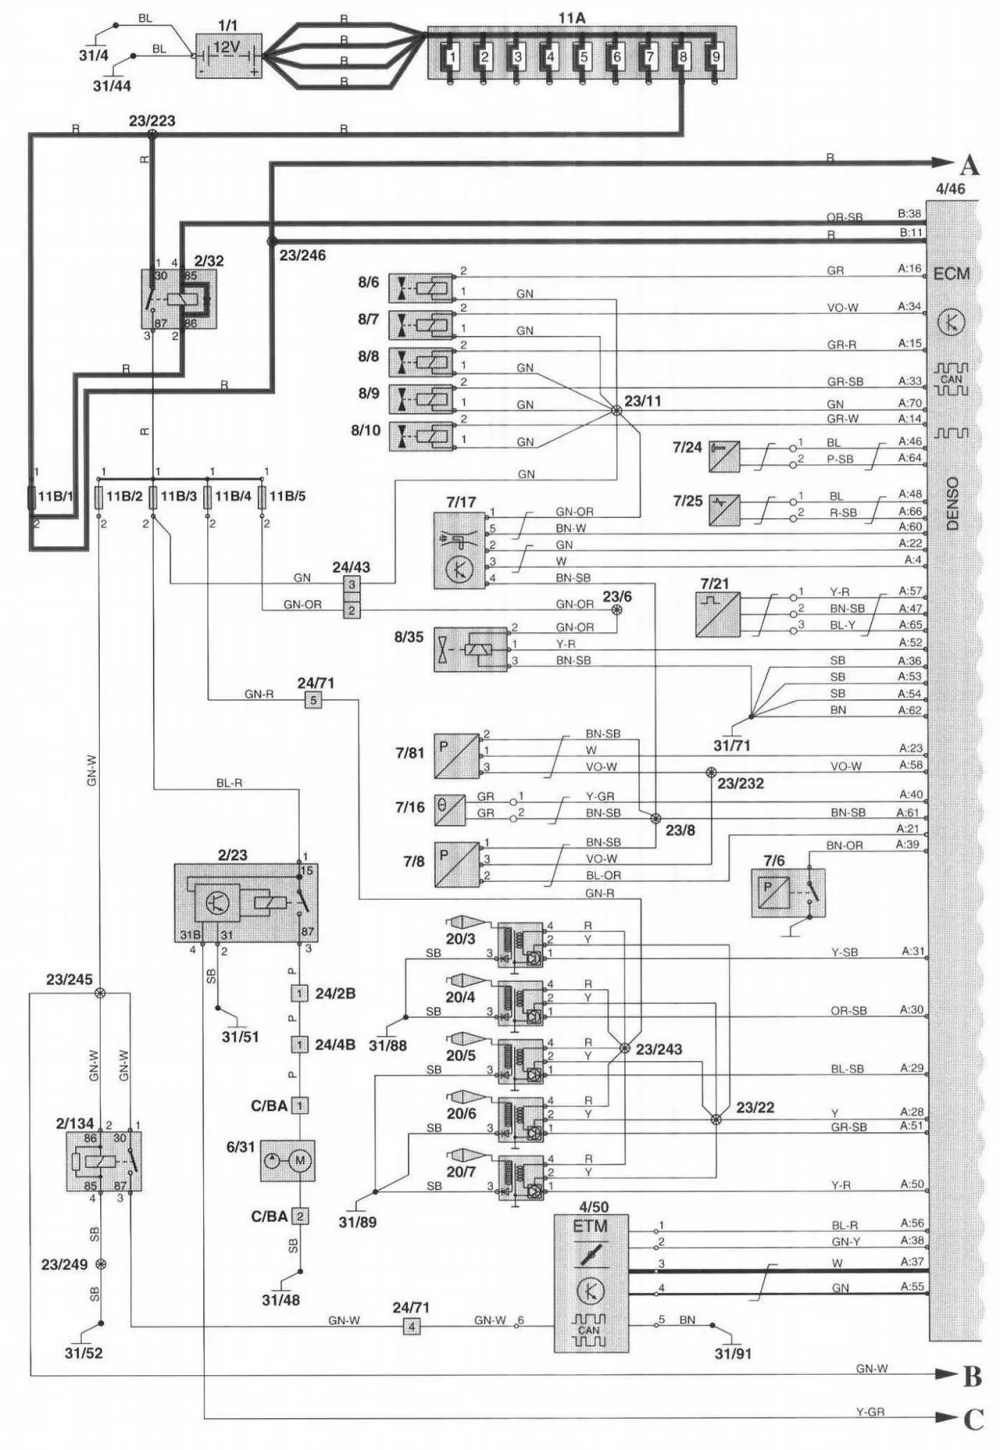 medium resolution of wiring diagram volvo xc70 free wiring diagram for you u2022 volvo s80 wiring diagram 2000 volvo wiring diagram